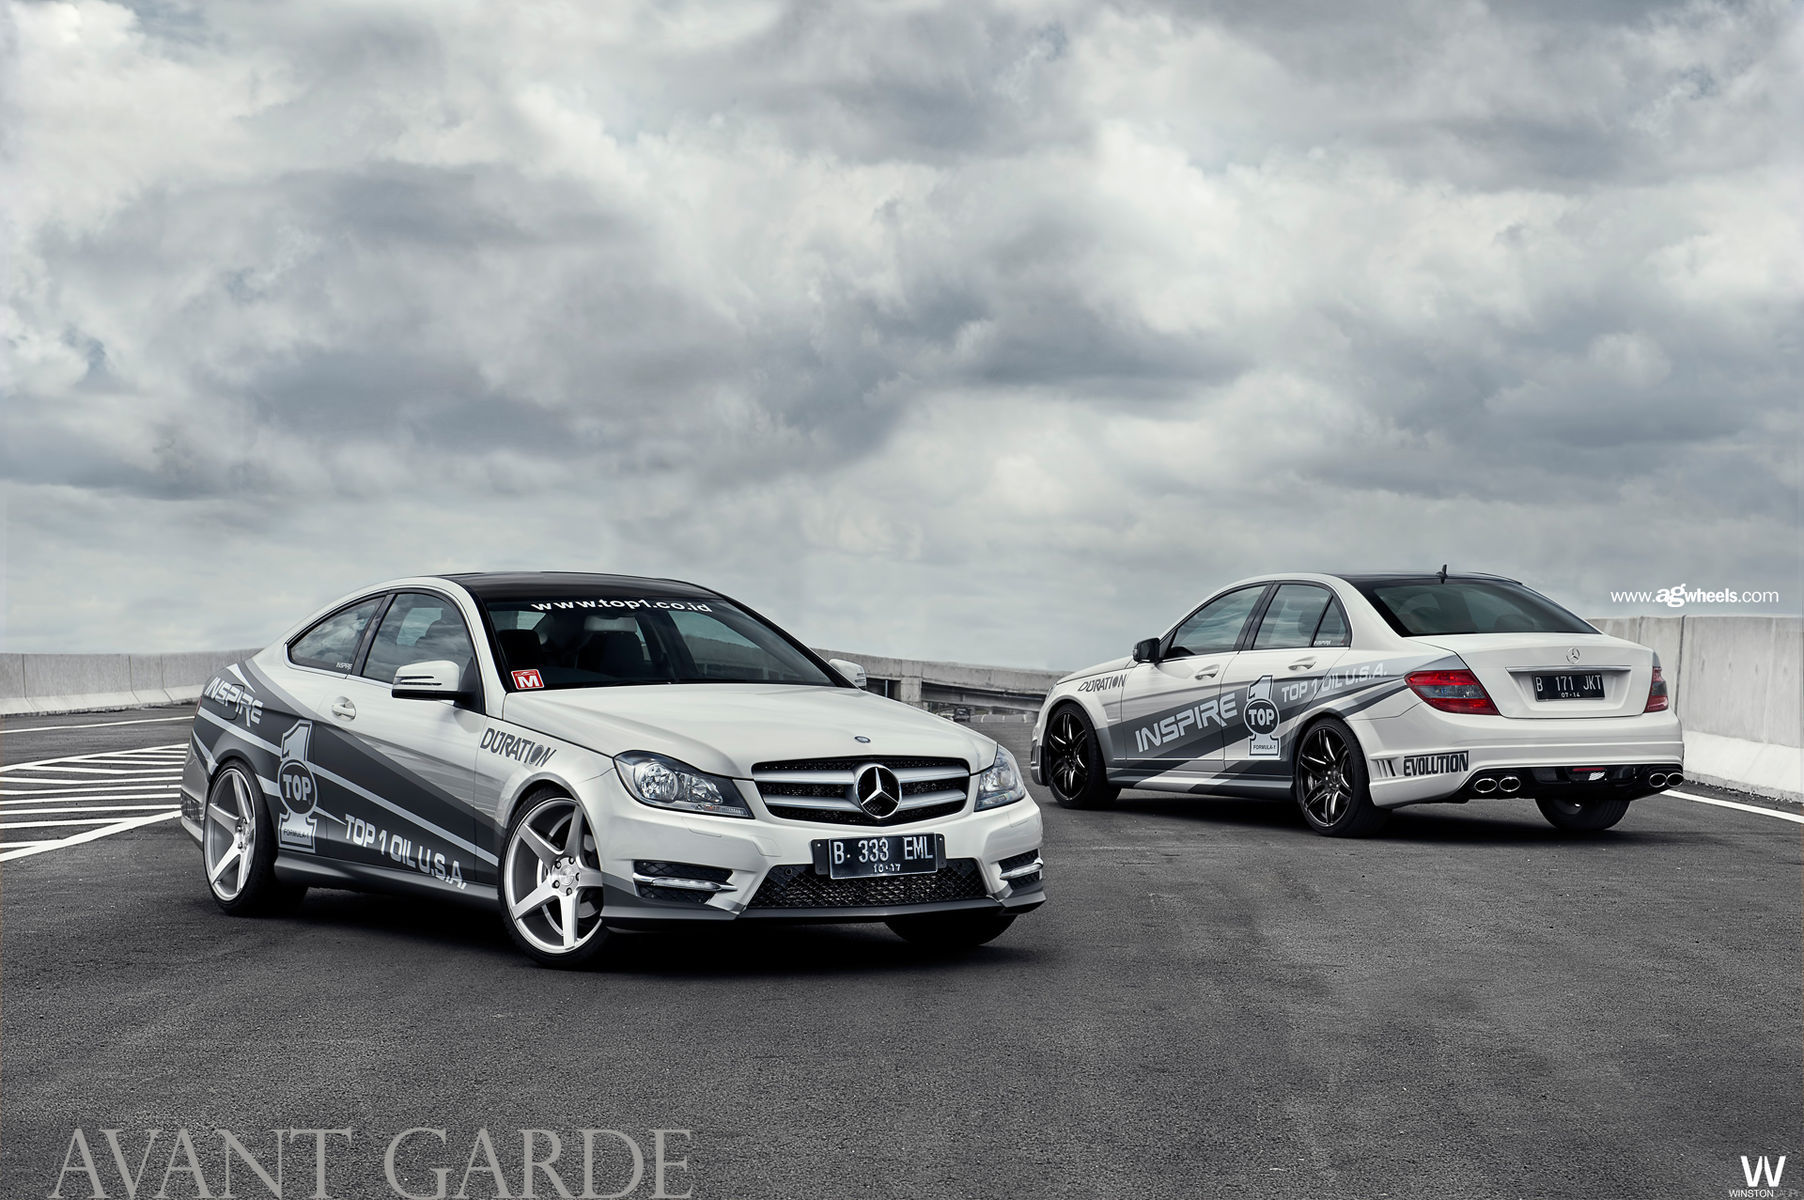 Mercedes-Benz C-Class | Mercedes-Benz C-Class Sedan & Coupe